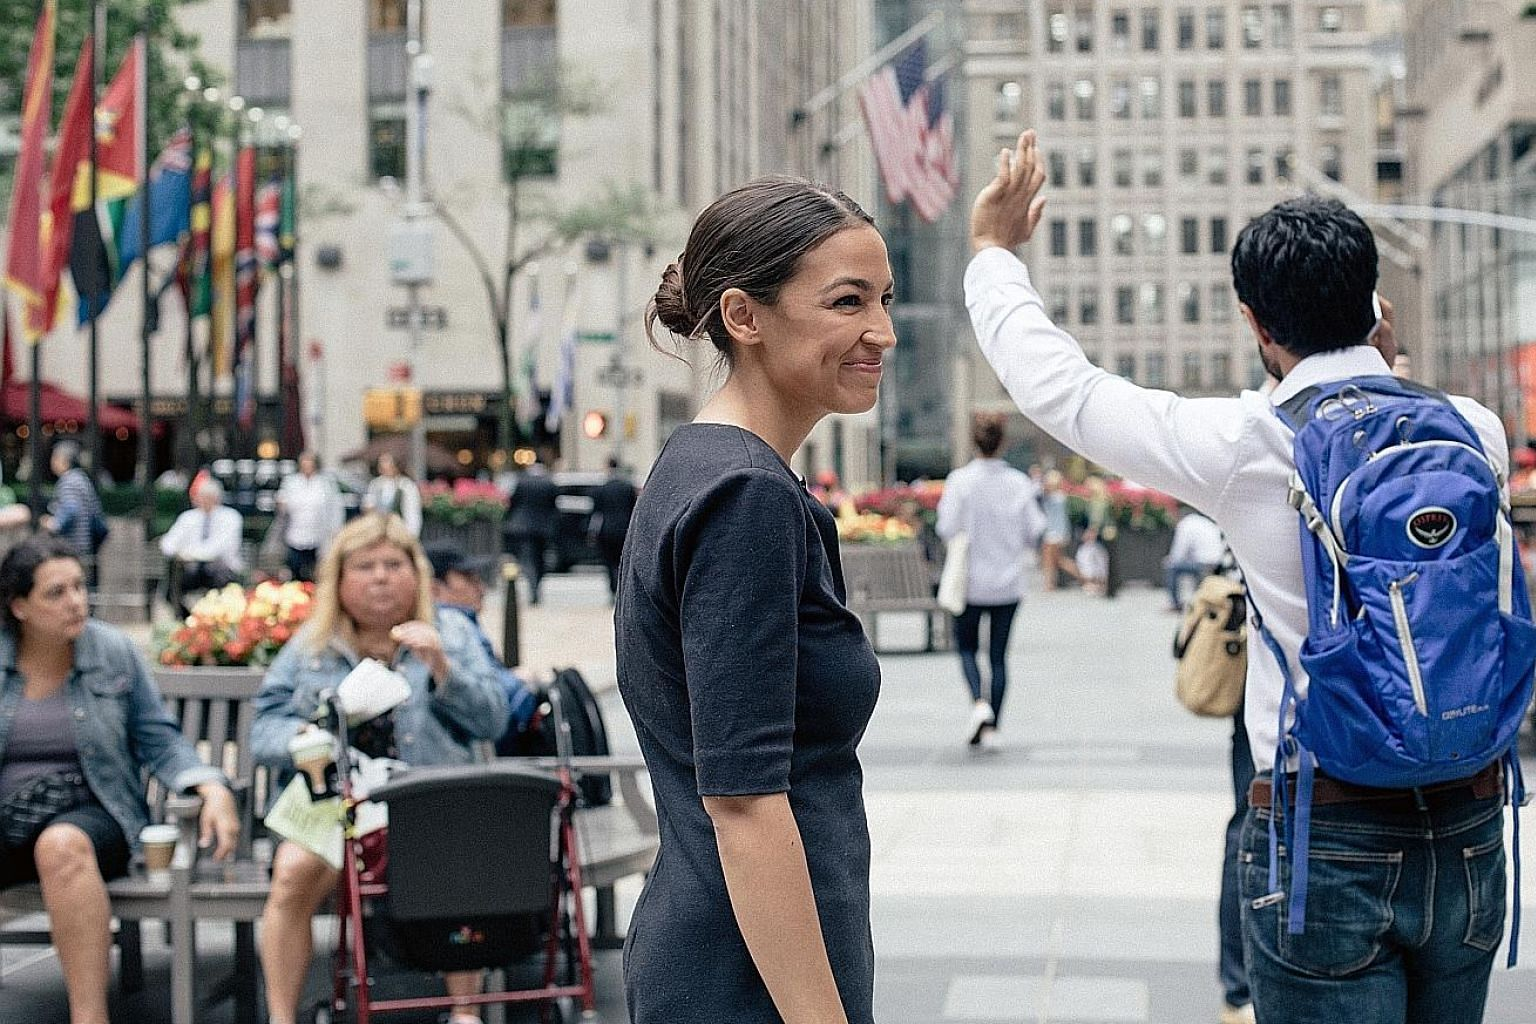 Ms Alexandria Ocasio-Cortez's resume up to now included waitress, children's book publisher, community activist, member of the Democratic Socialists of America and former Bernie Sanders campaign organiser. She studied in Boston University and majored